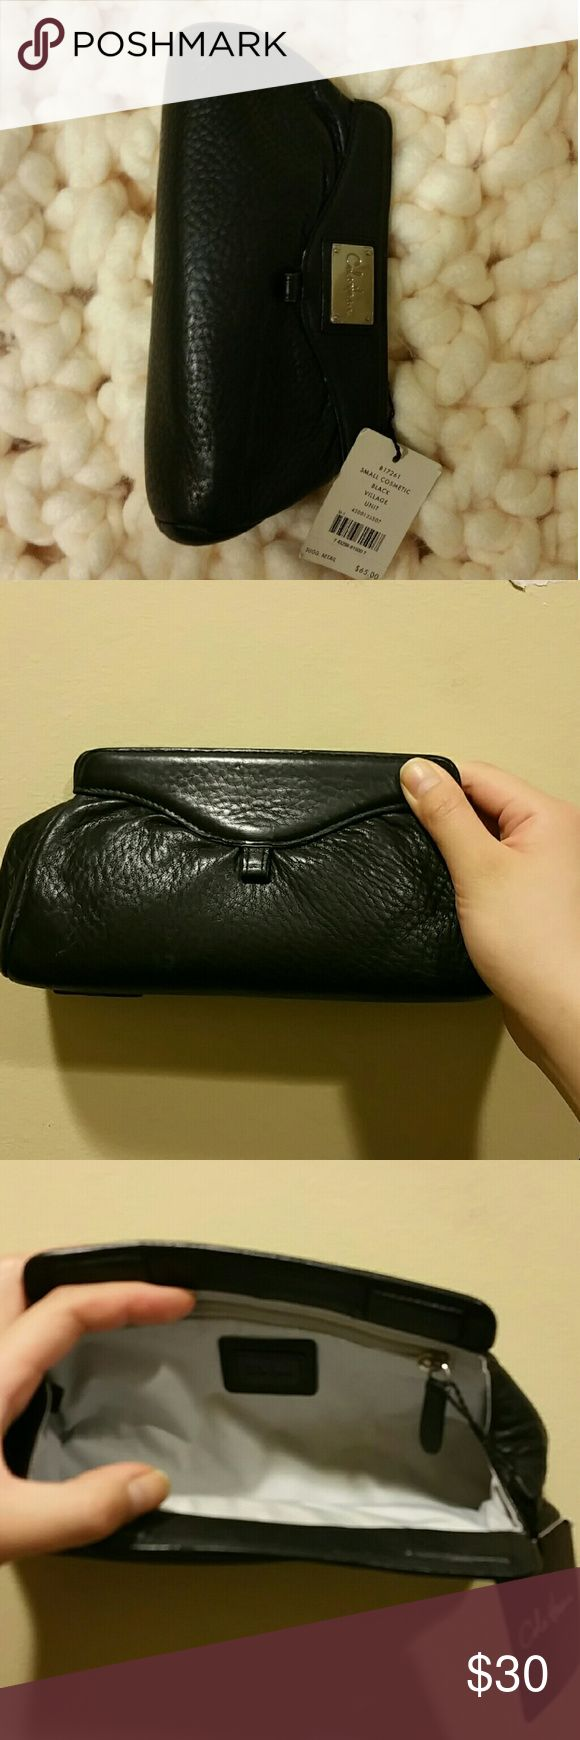 Cole Haan Small cosmetic/clutch Black Vintage Unit Dual use as a cosmetic bag or as a clutch. The item was used a handful of times and comes with original tag. This item was purchased at the 5th Ave store in nyc. The item great condition minus the little scuffs you see in the picture. It can be cleaned out. Cole Haan Bags Clutches & Wristlets